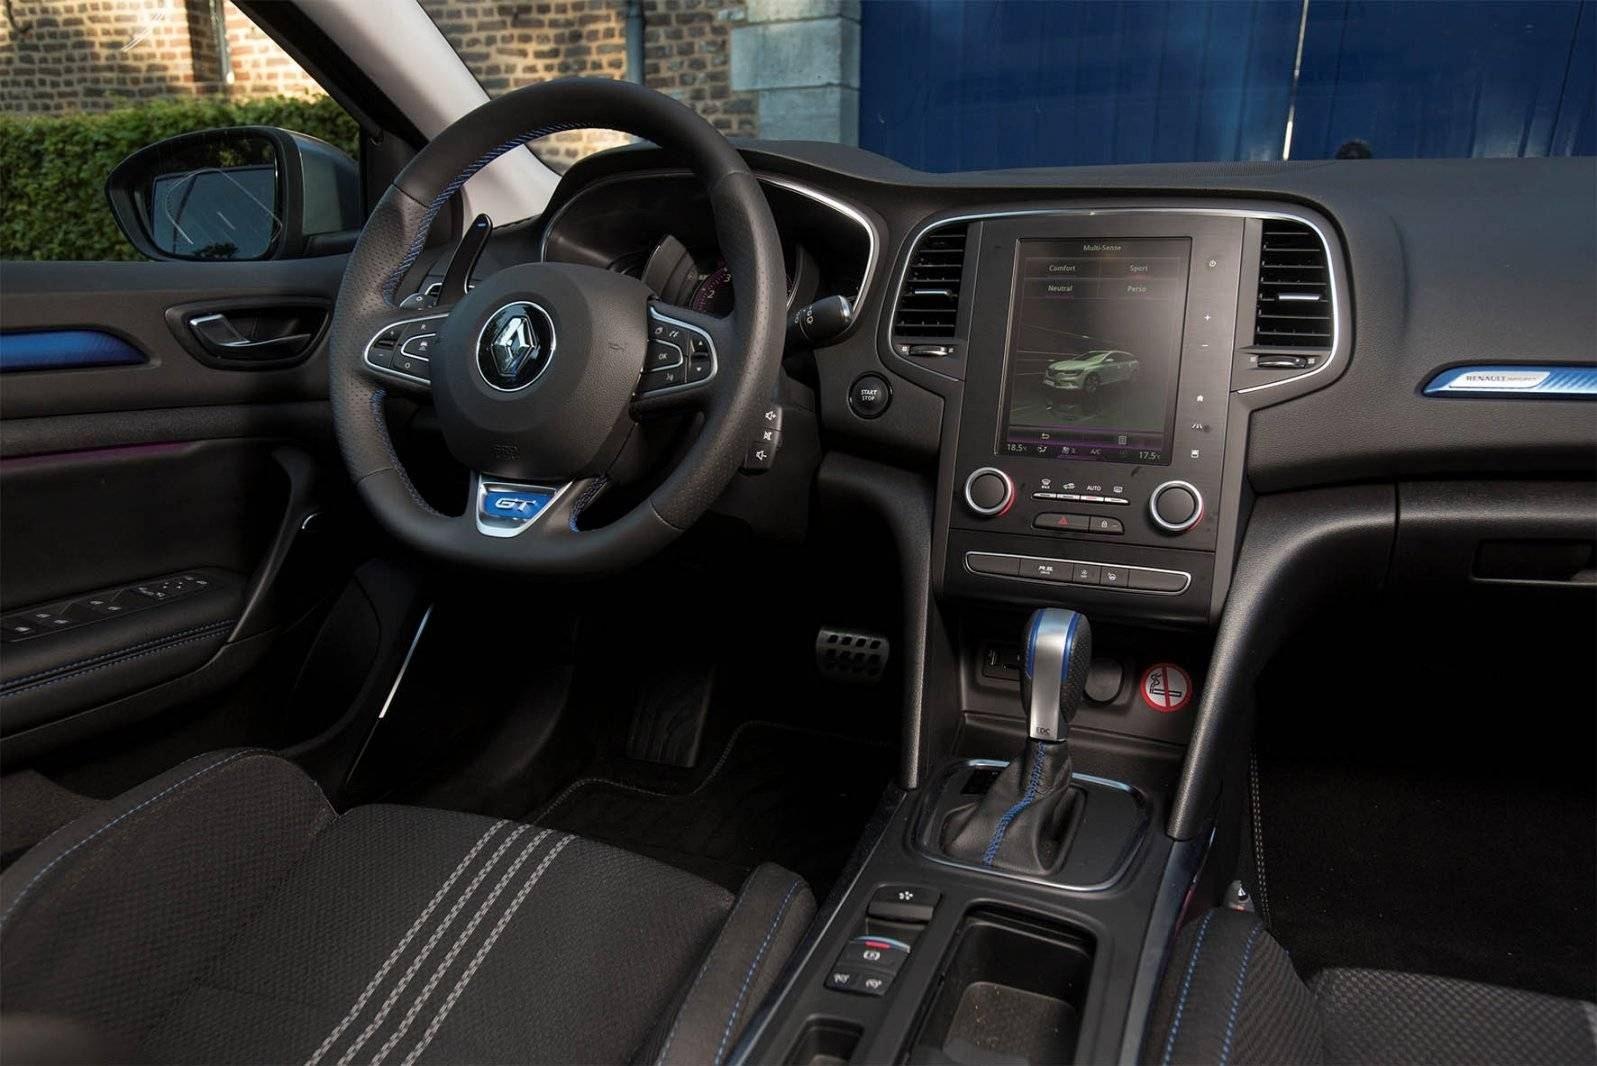 test autotest renault m gane estate autotests. Black Bedroom Furniture Sets. Home Design Ideas